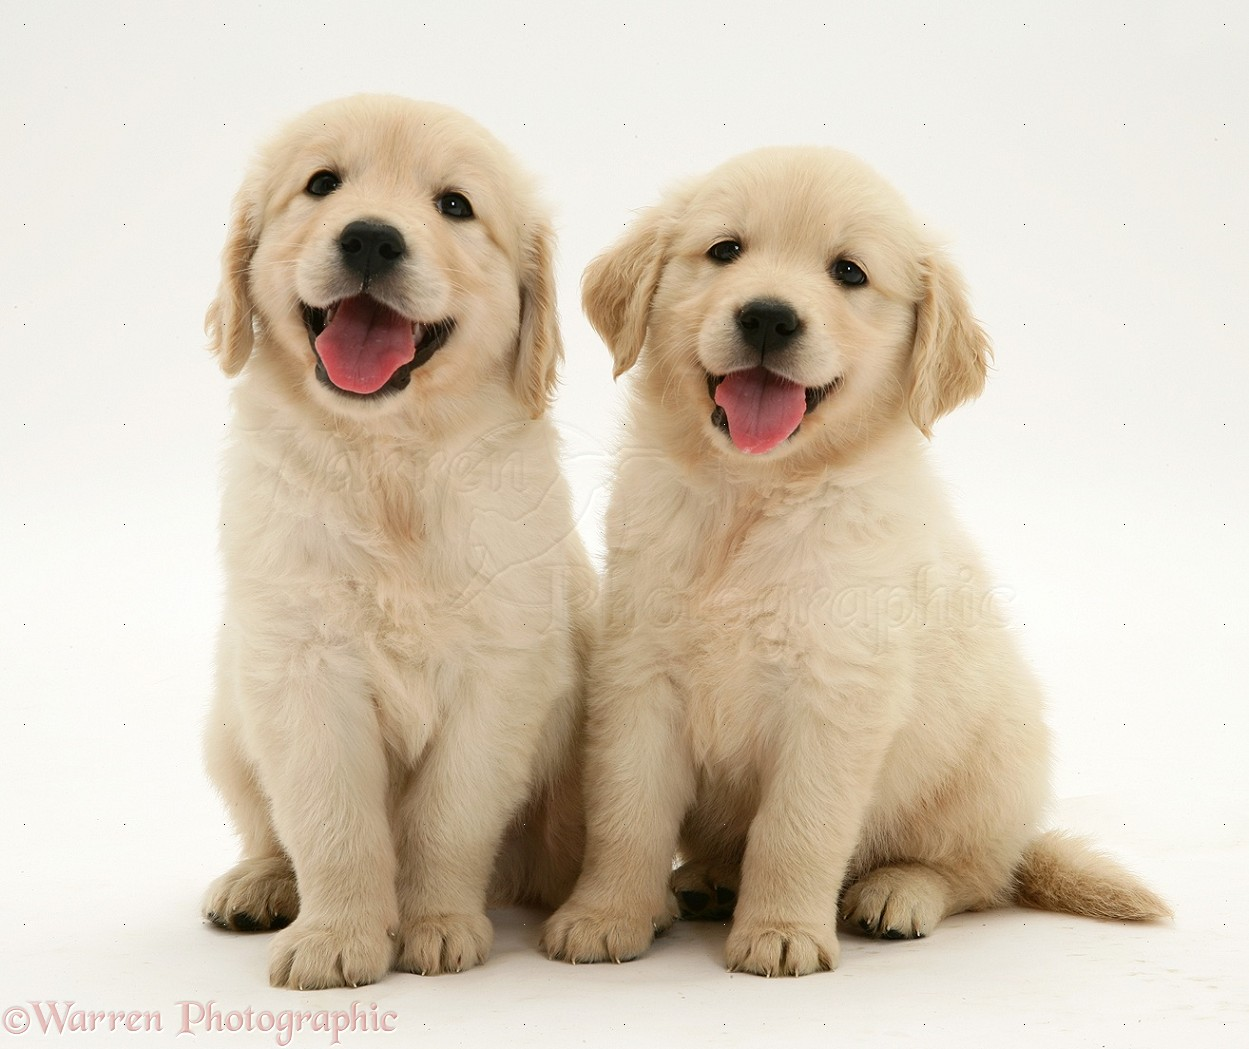 Dogs two golden retriever pups sitting photo wp14084 for Puppy dog sitter